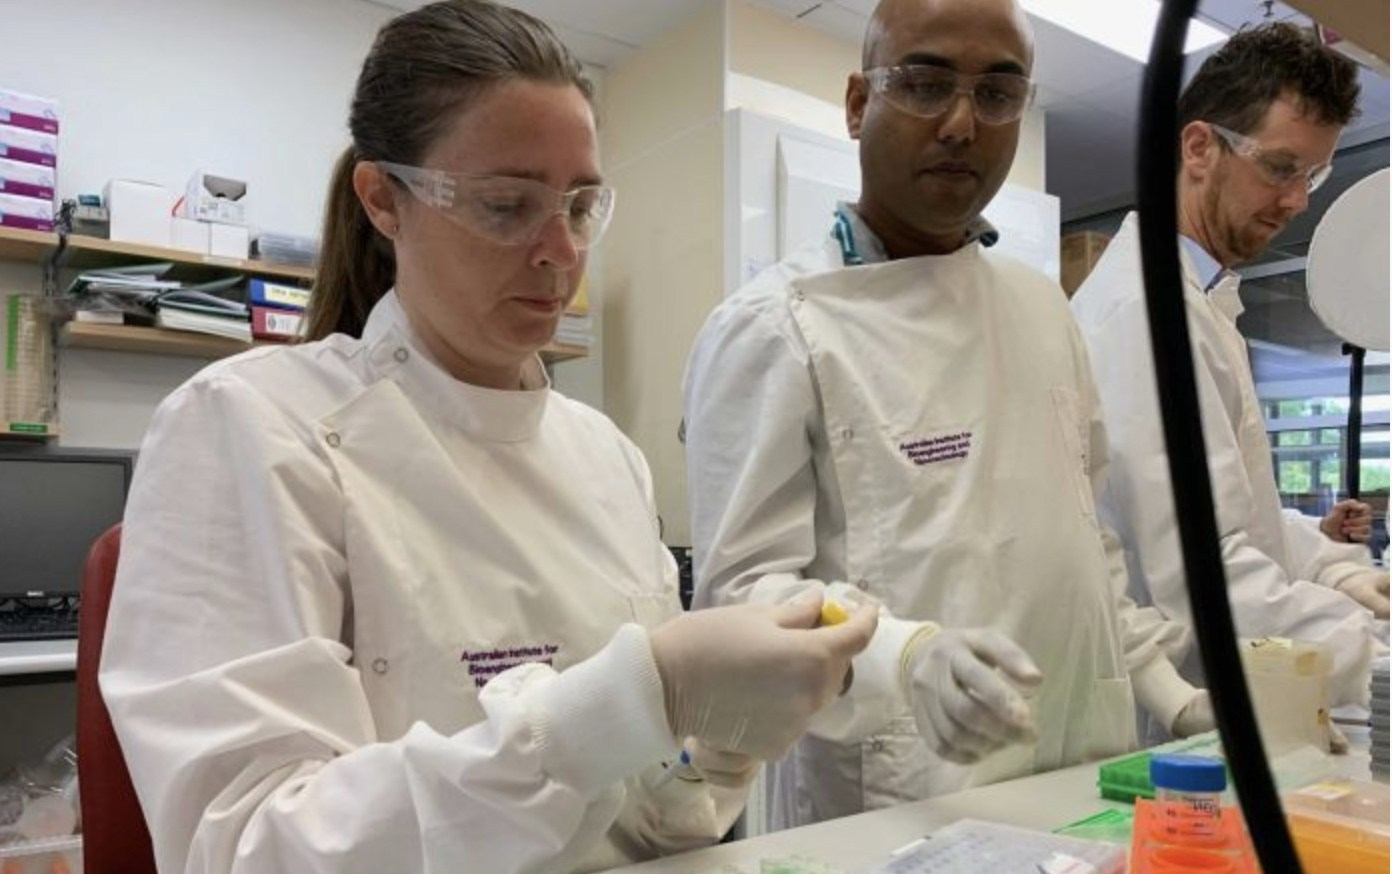 Queensland University researchers work on a coronavirus vaccine in a file photo.